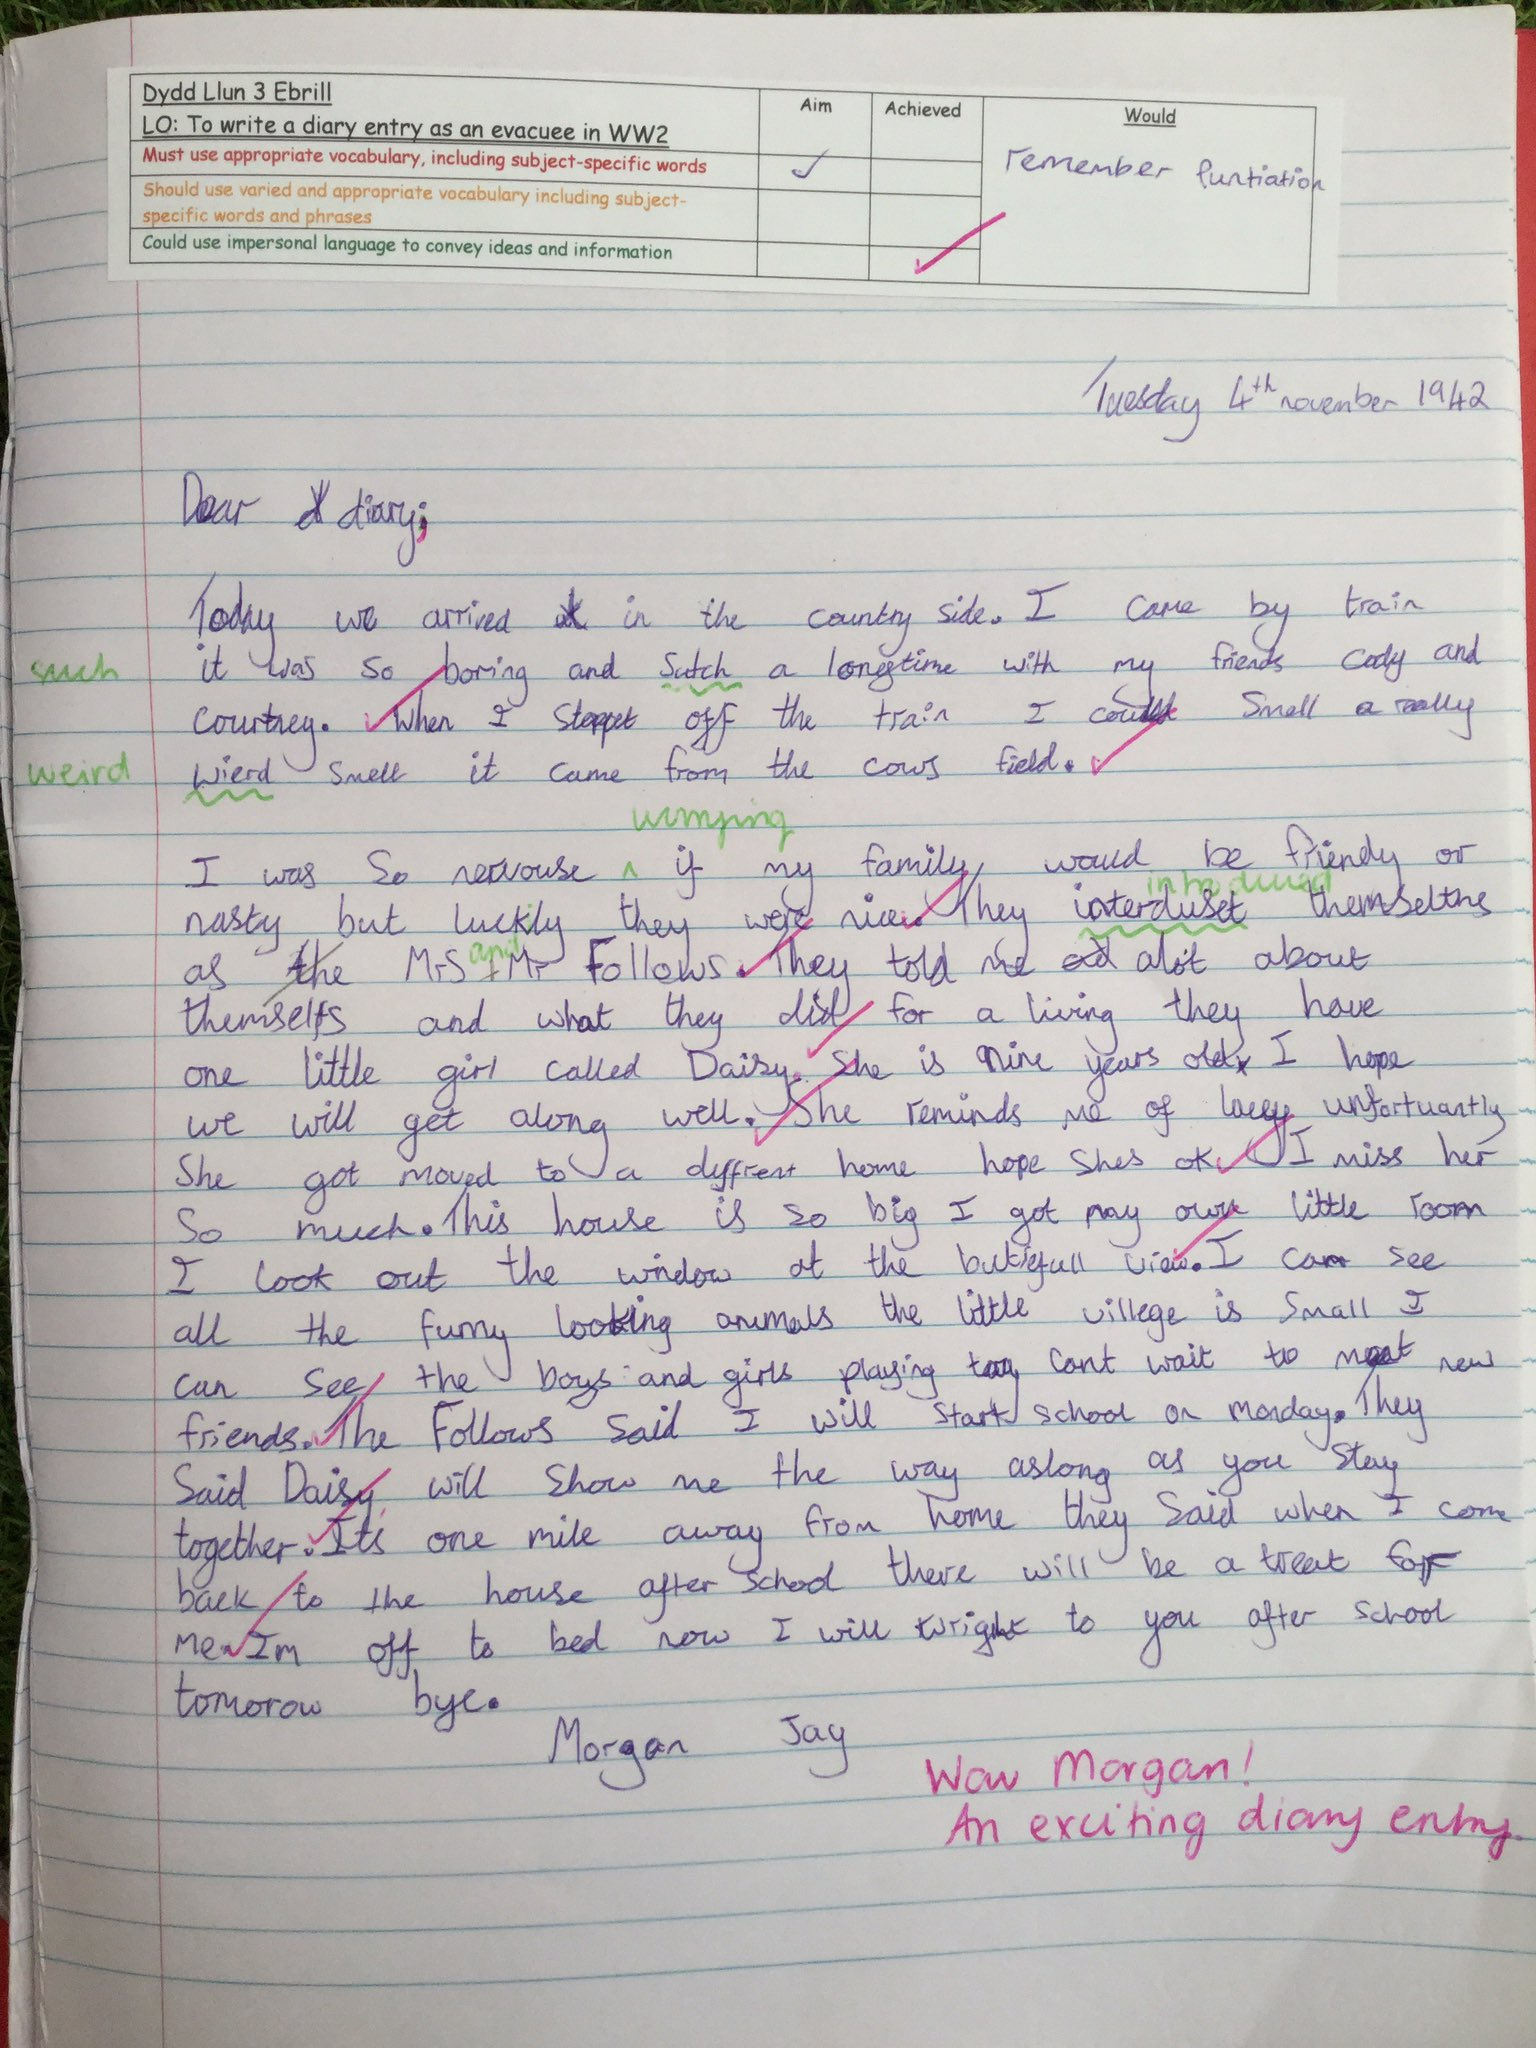 My Mum's Diary as an Evacuee Aged Sixteen Part 1